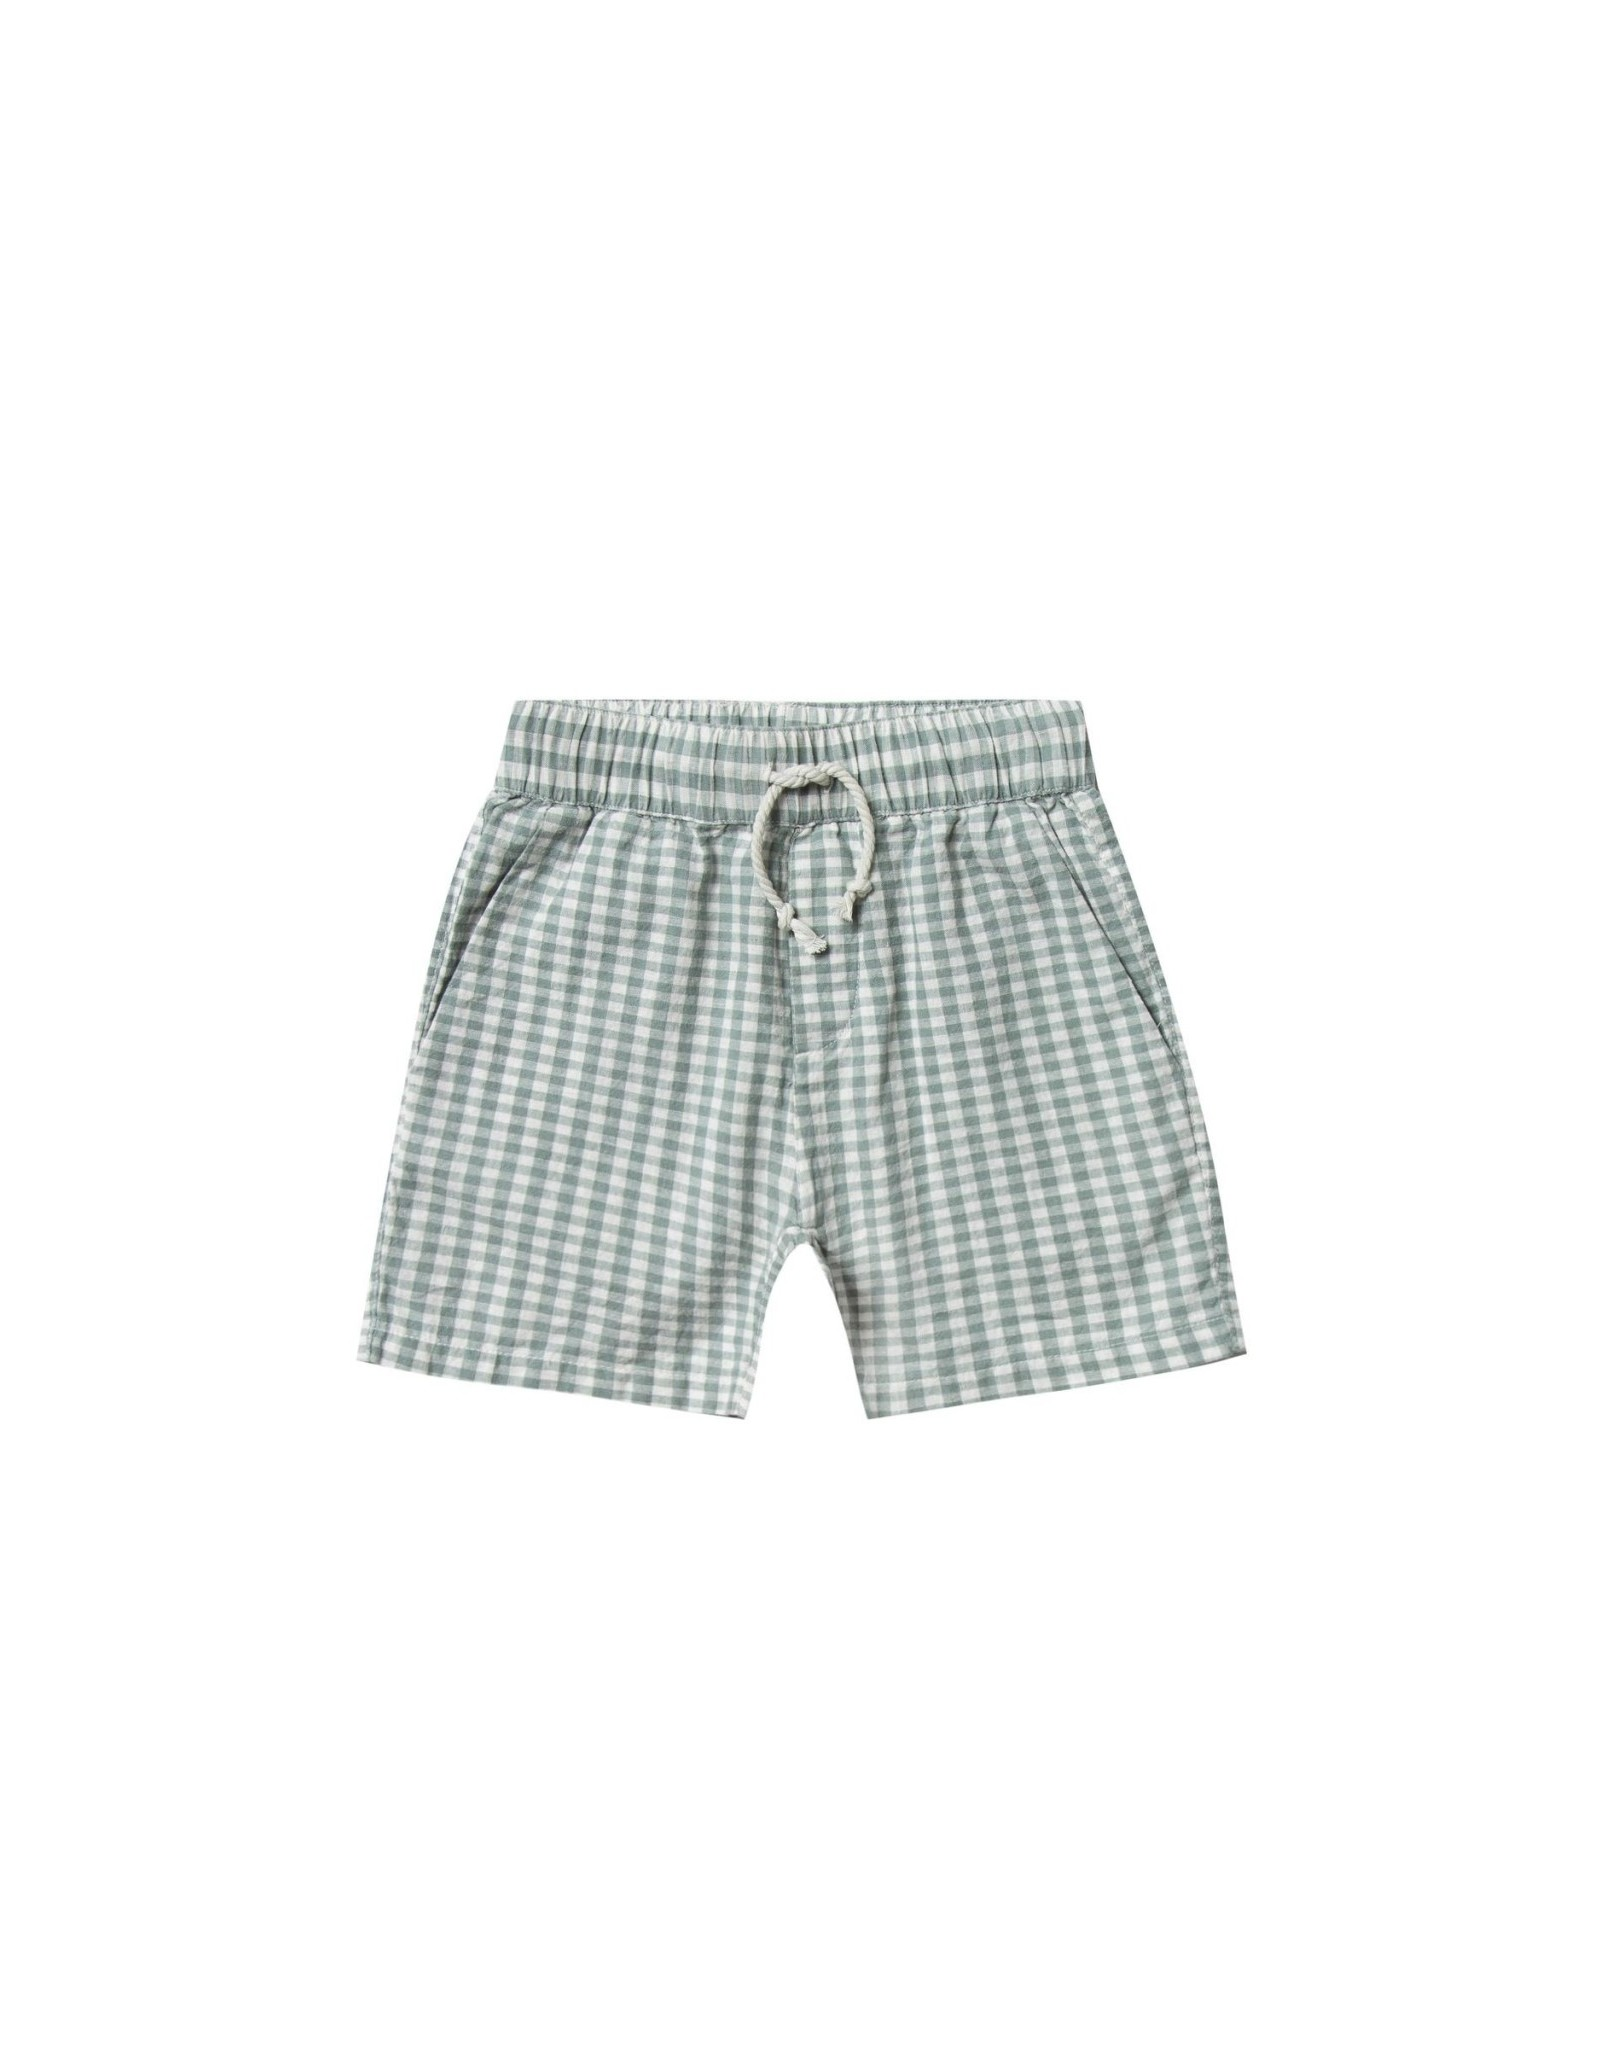 Rylee and Cru gingham drawstring short